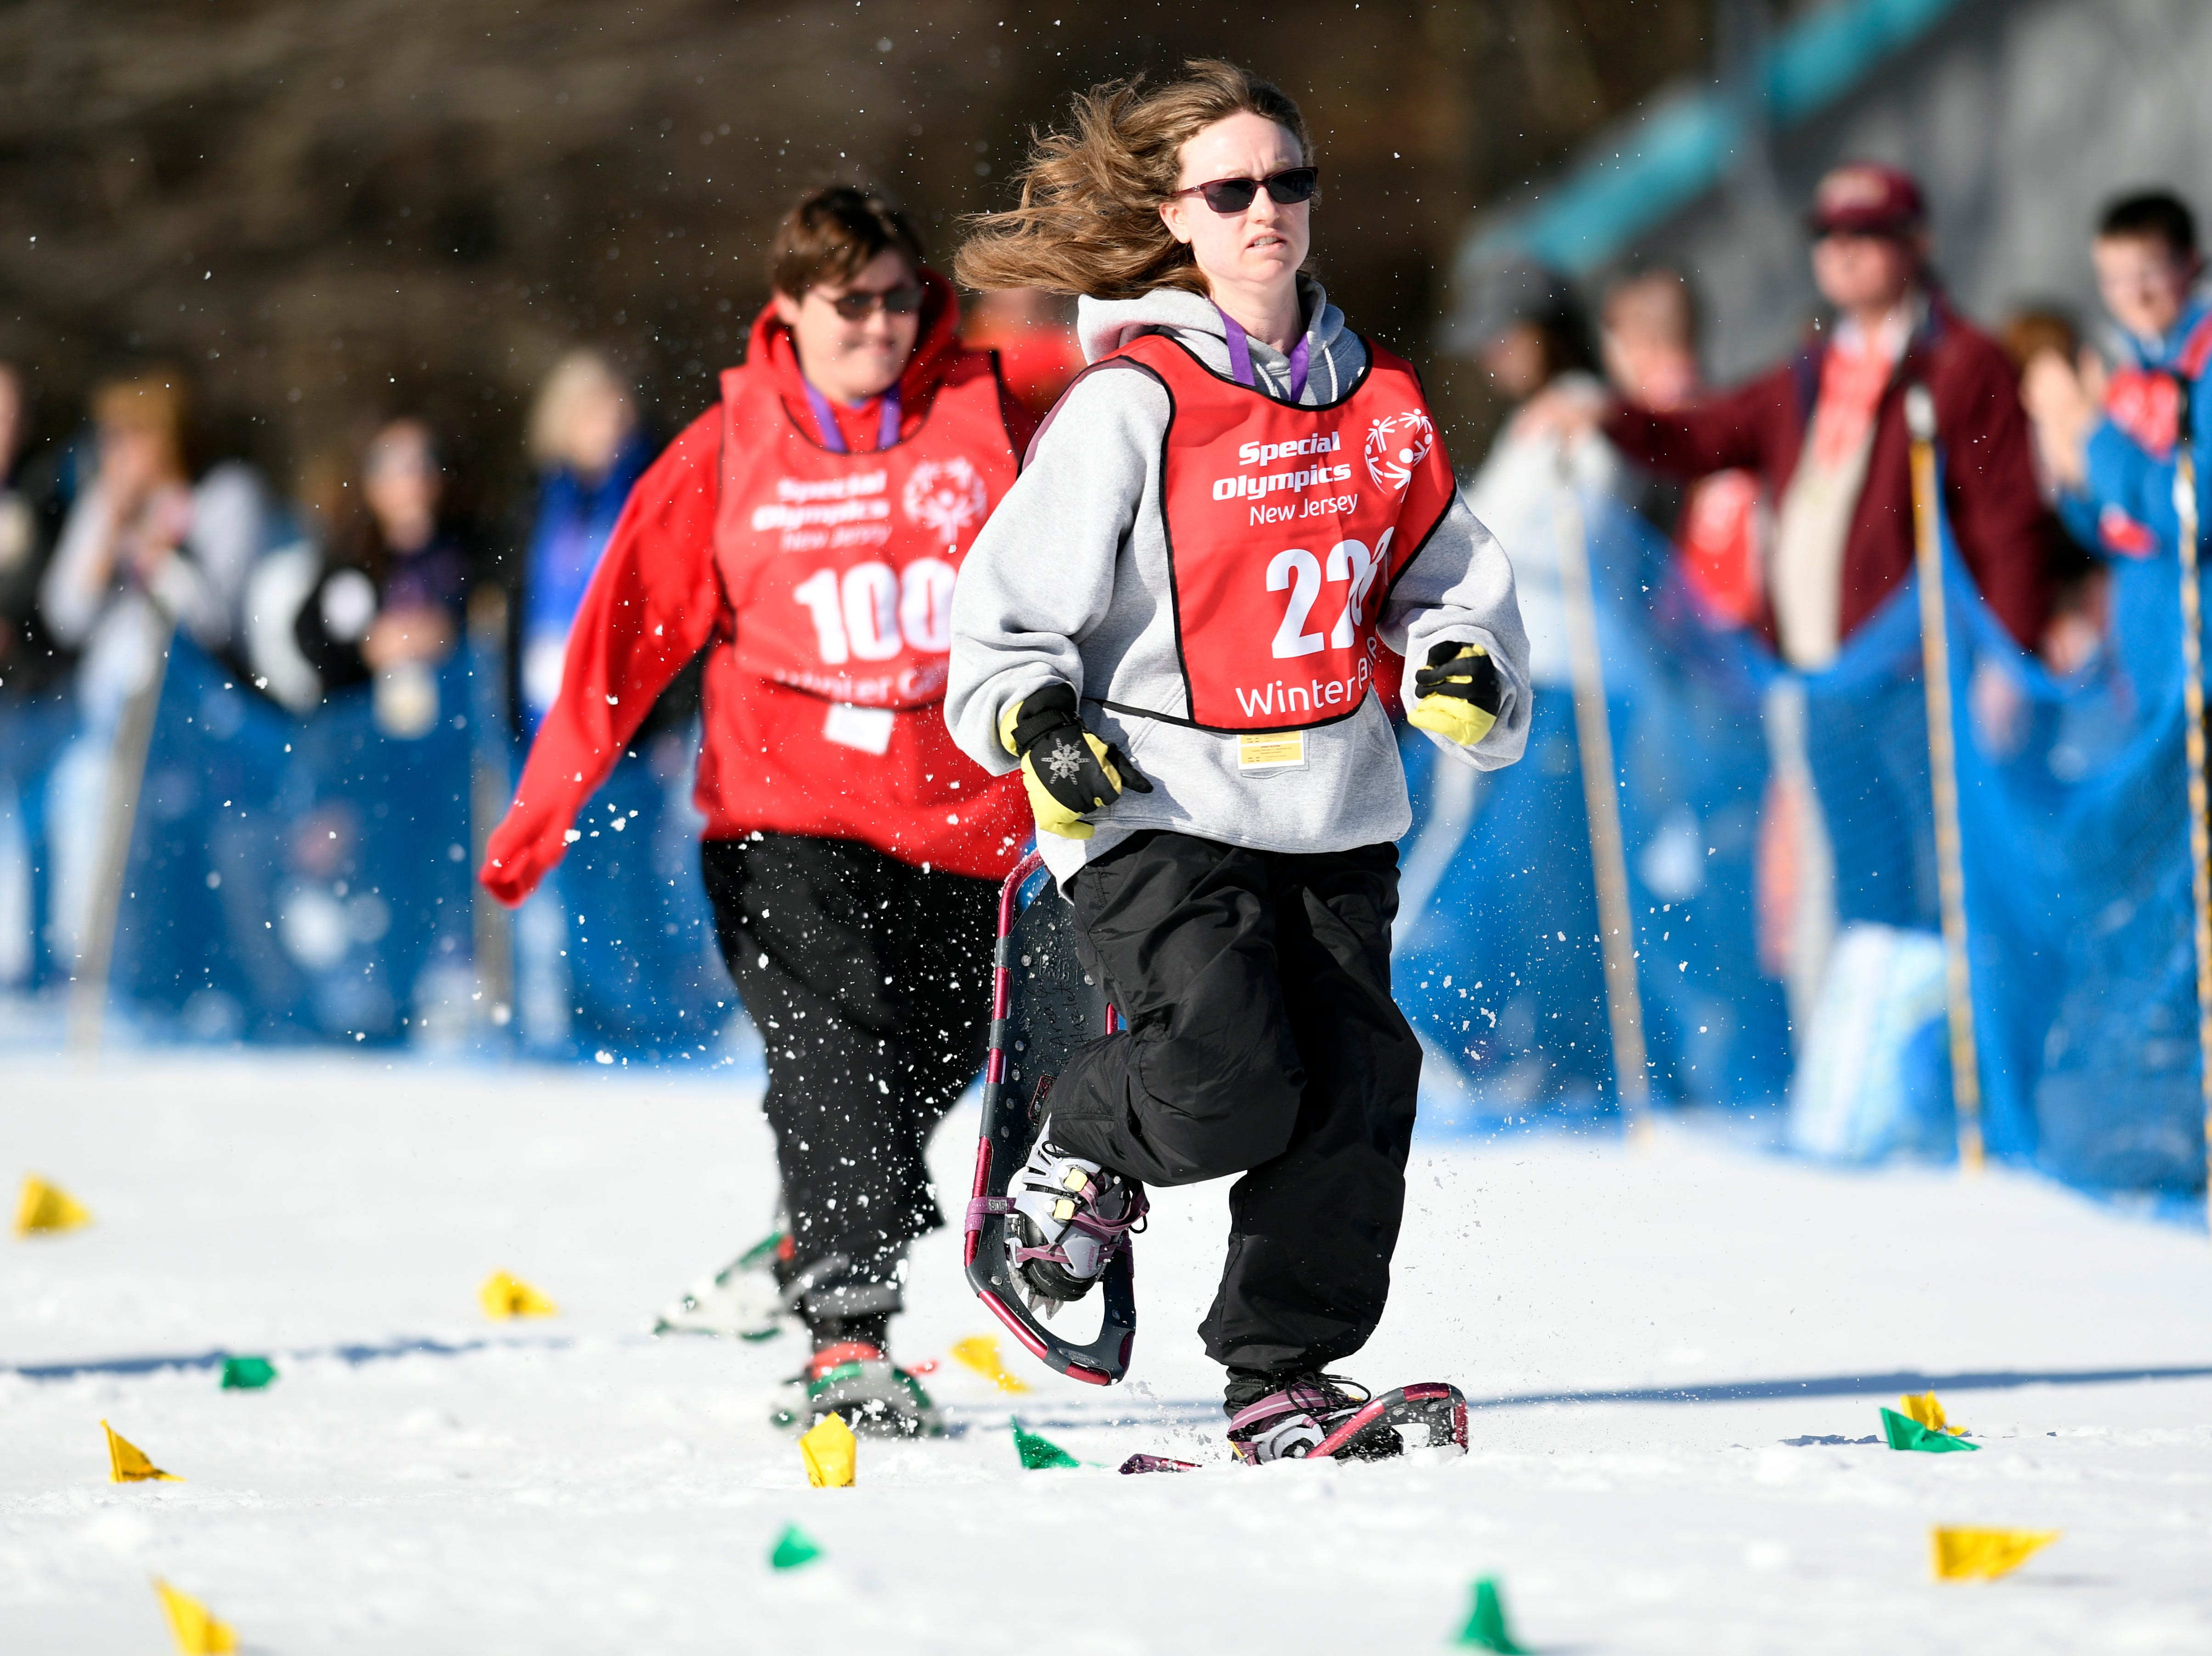 Melissa Connolly of Hazlet competes in the snowshoeing 200-meter during the Special Olympics New Jersey 2019 Winter Games on Tuesday, Feb. 5, 2019, in Vernon.